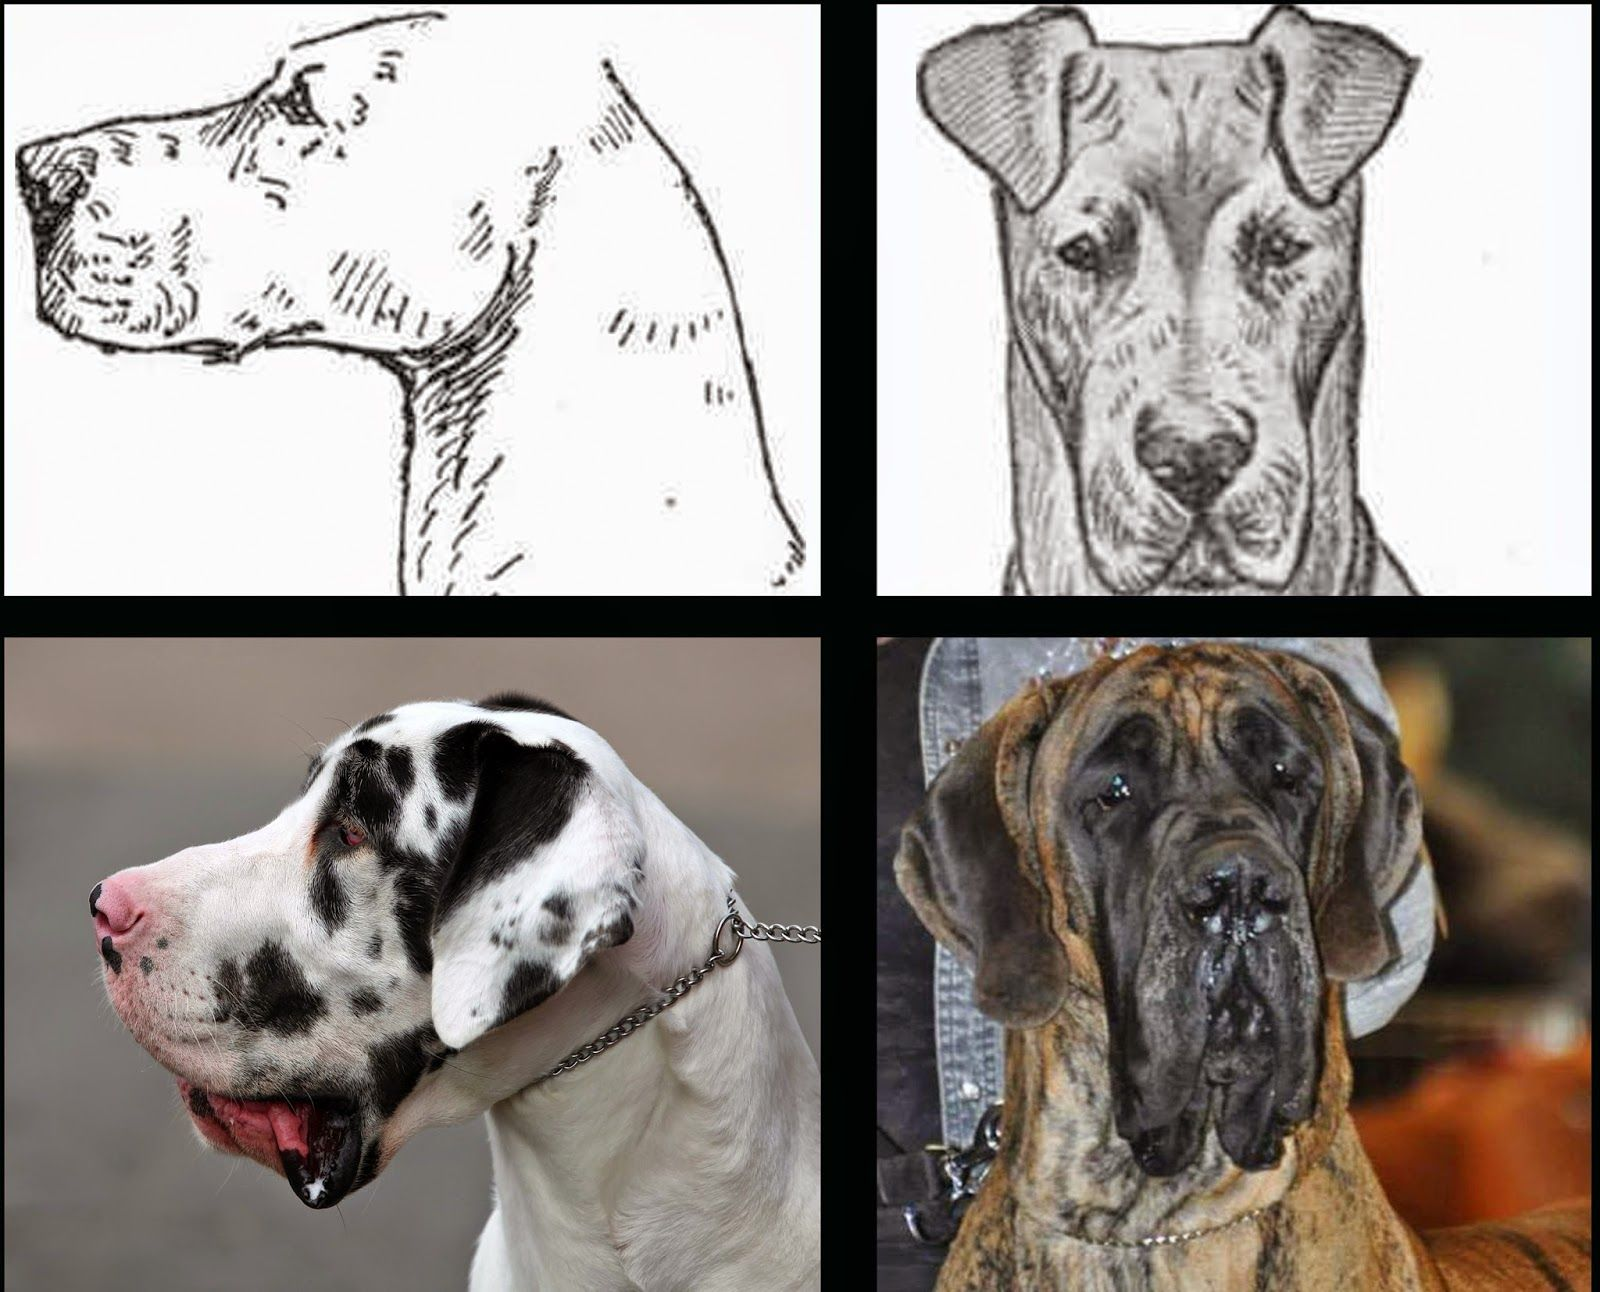 Pedigree Dogs Exposed The Blog The Demise Of The Great Dane